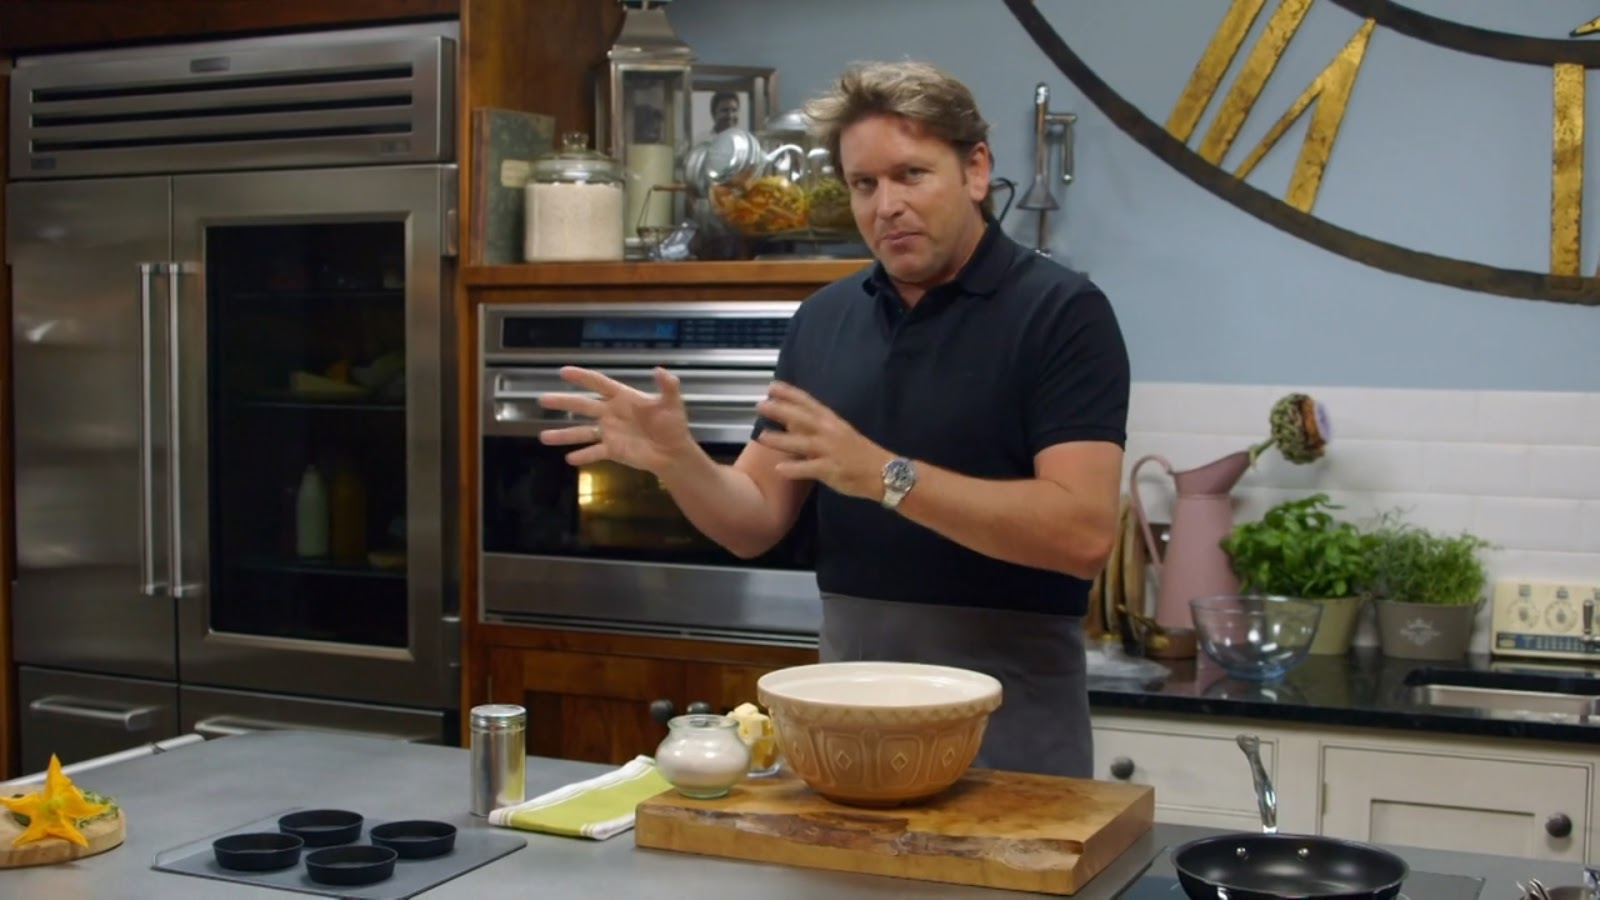 james martin home comforts grub on the go video clump gardening cooking videos. Black Bedroom Furniture Sets. Home Design Ideas